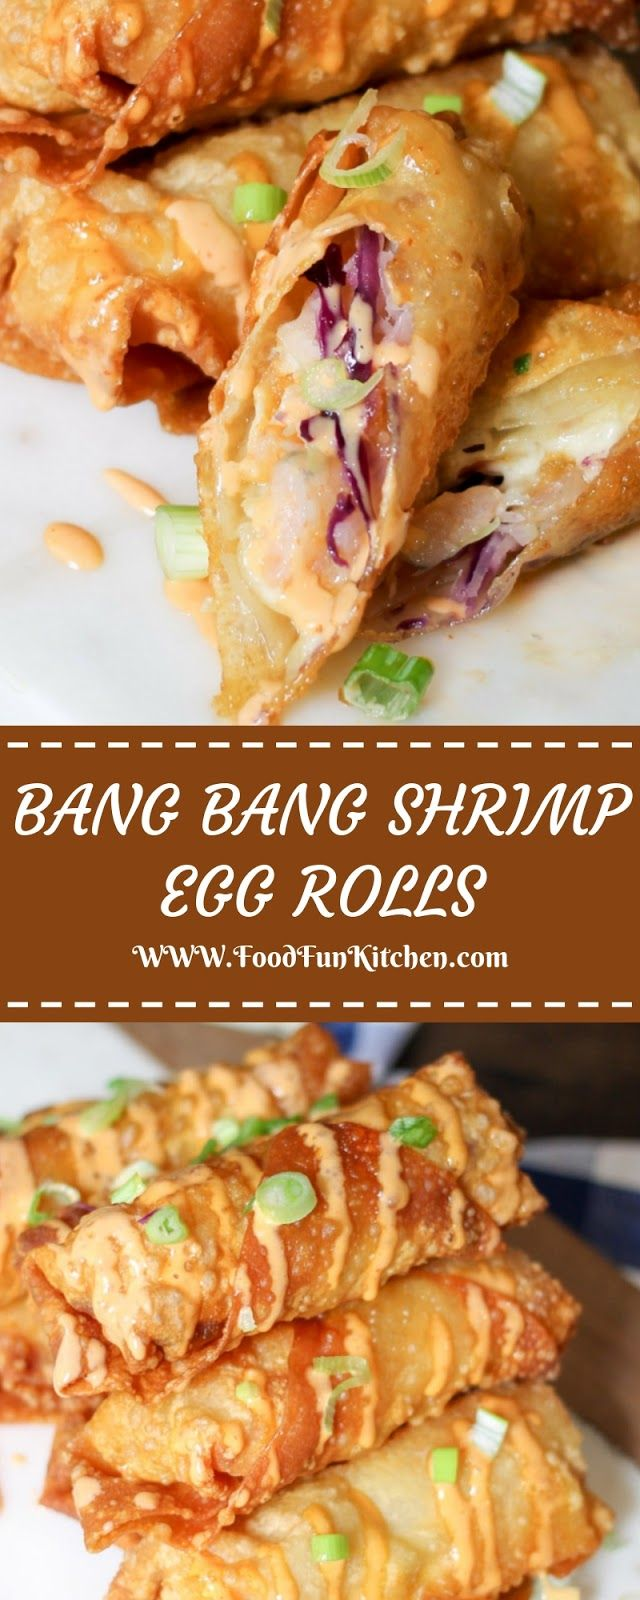 BANG BANG SHRIMP EGG ROLLS #eggrolls